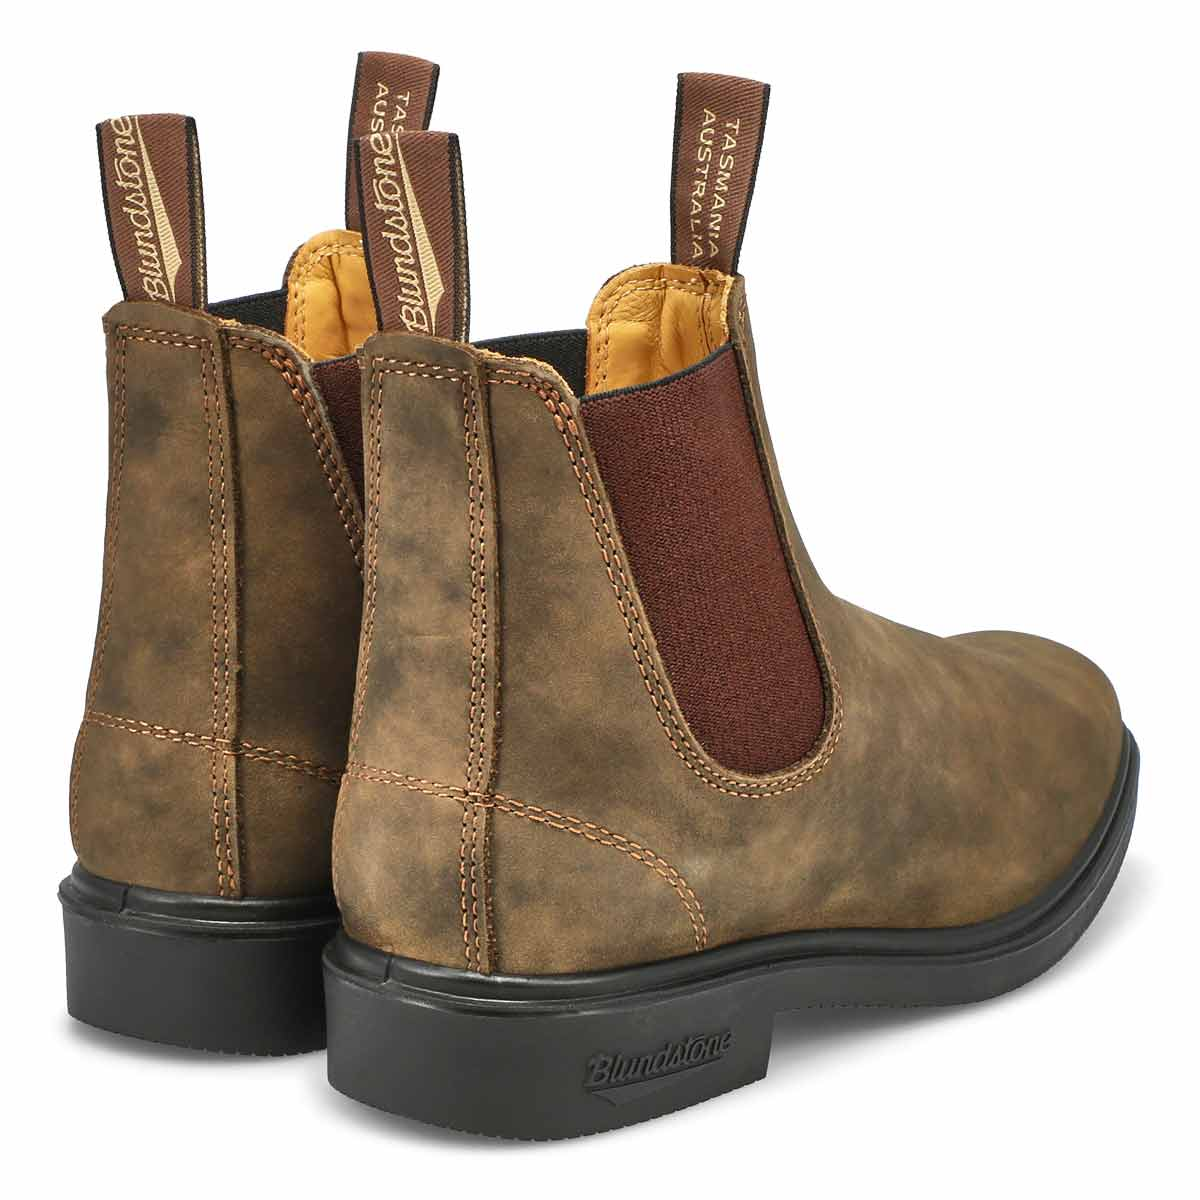 Unisex 1306 Chisel Toe Boot - Brown